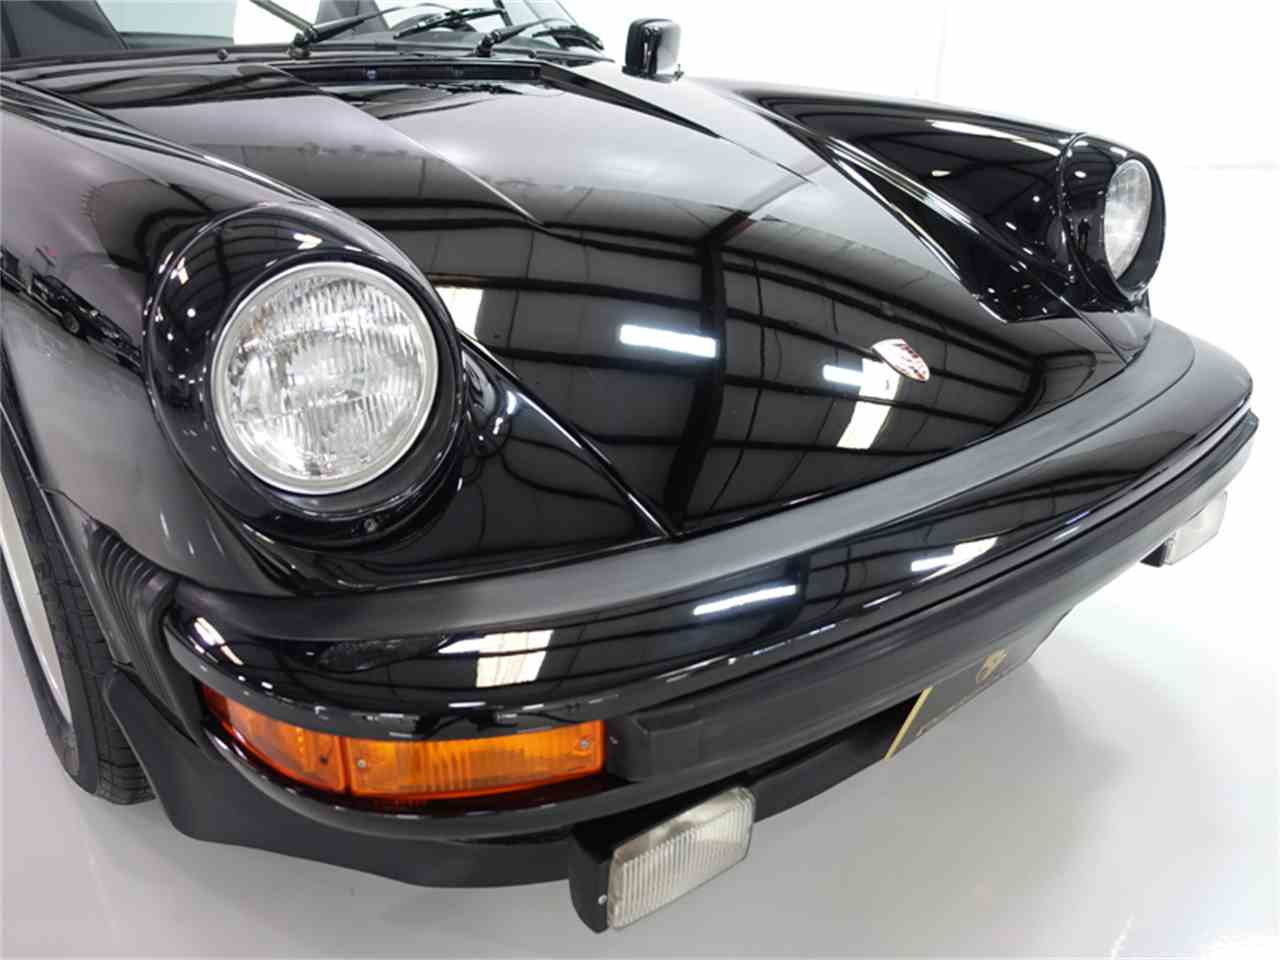 Large Picture of 1975 911 Carrera - $89,900.00 Offered by Daniel Schmitt & Co. - KKFN